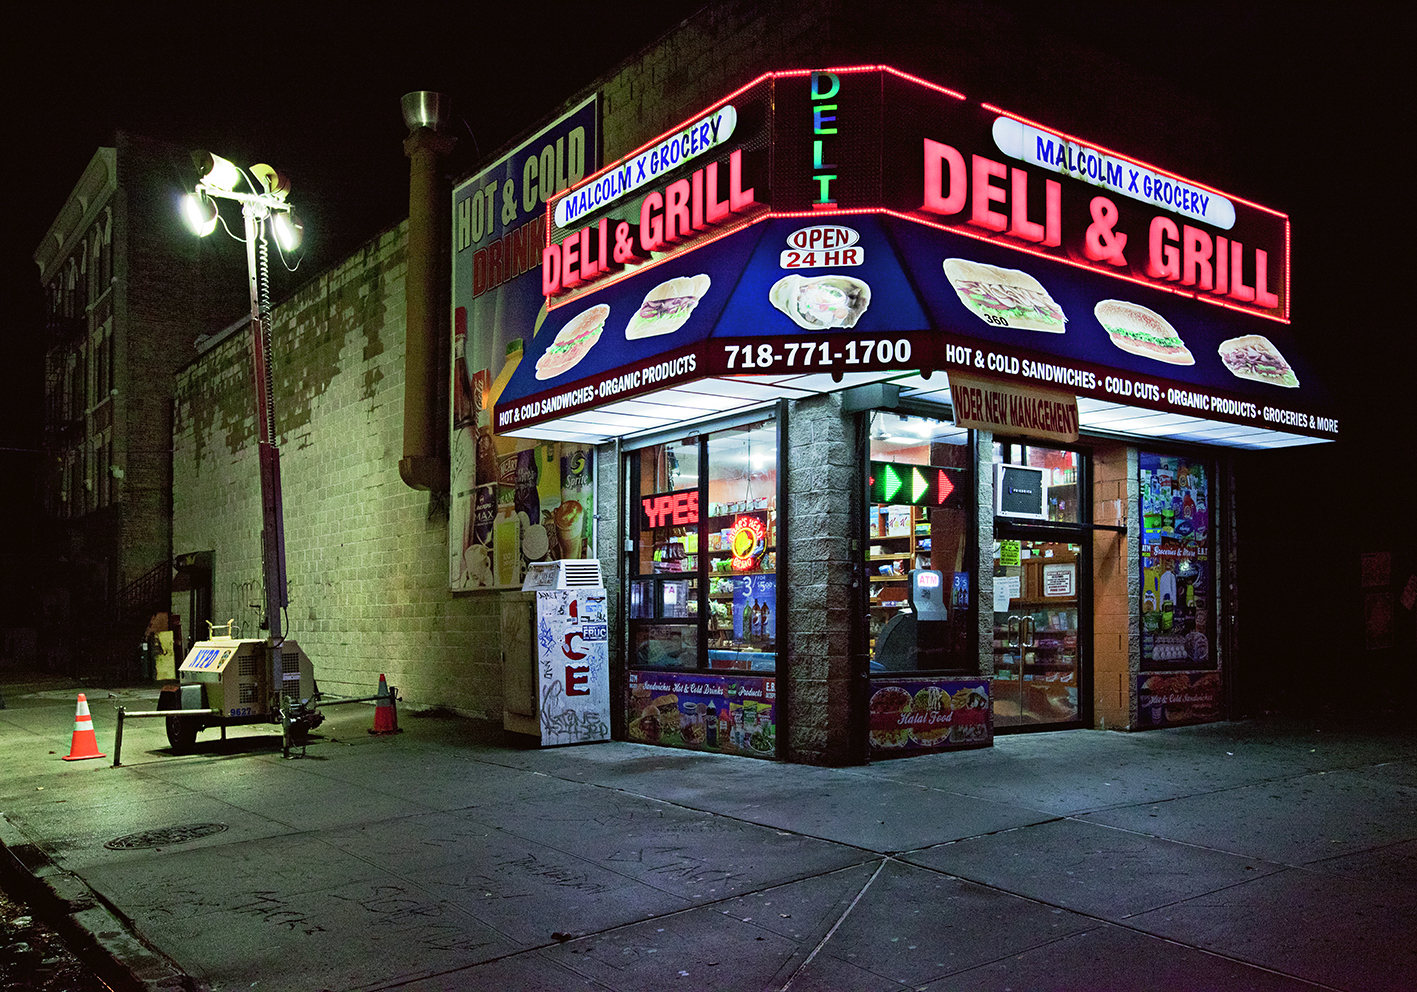 NEW_YORK_Deligrill